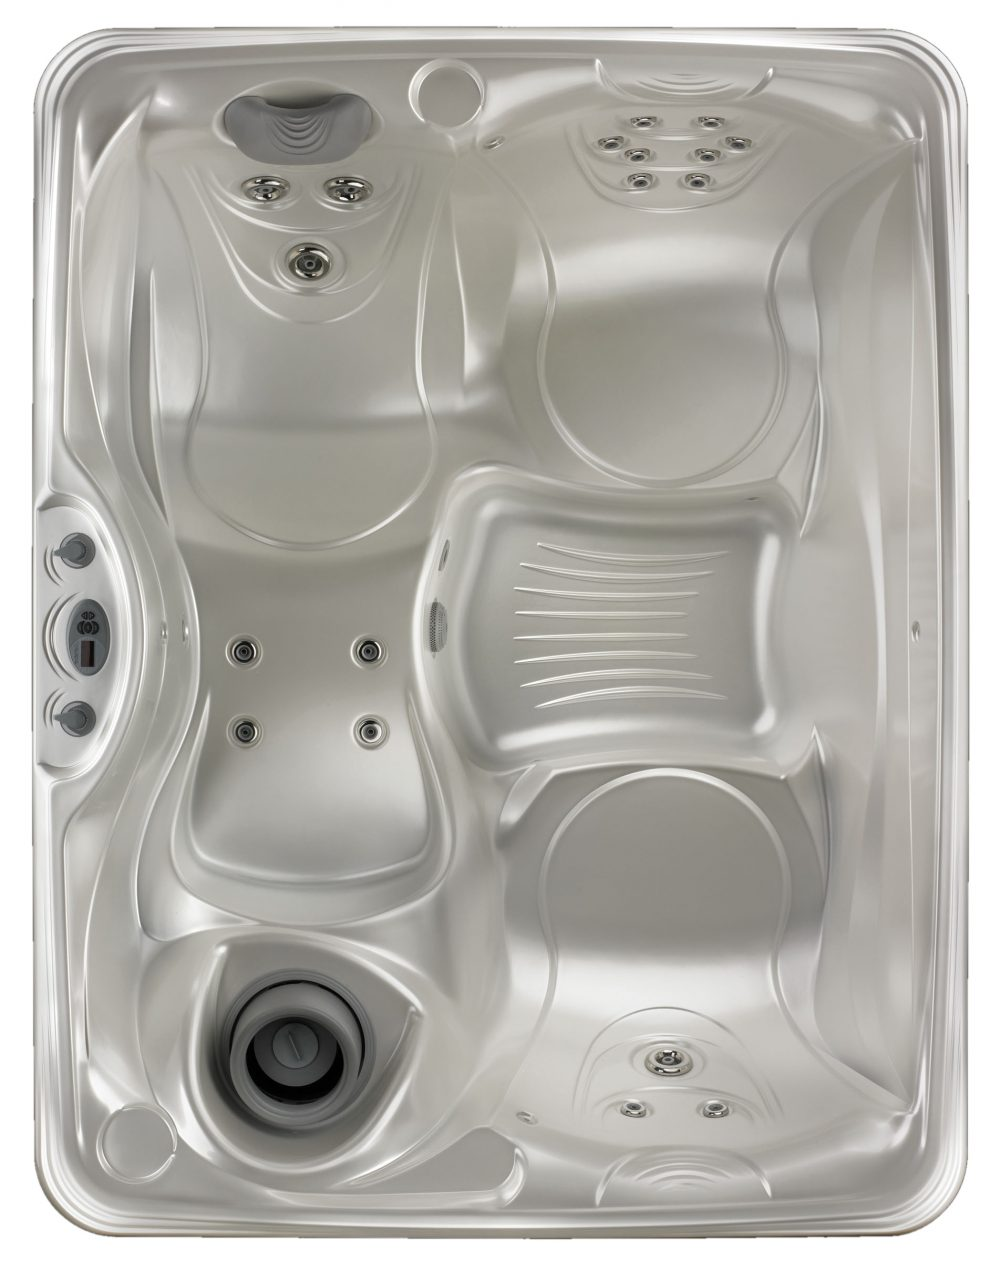 Stride Pearl Hot Tub